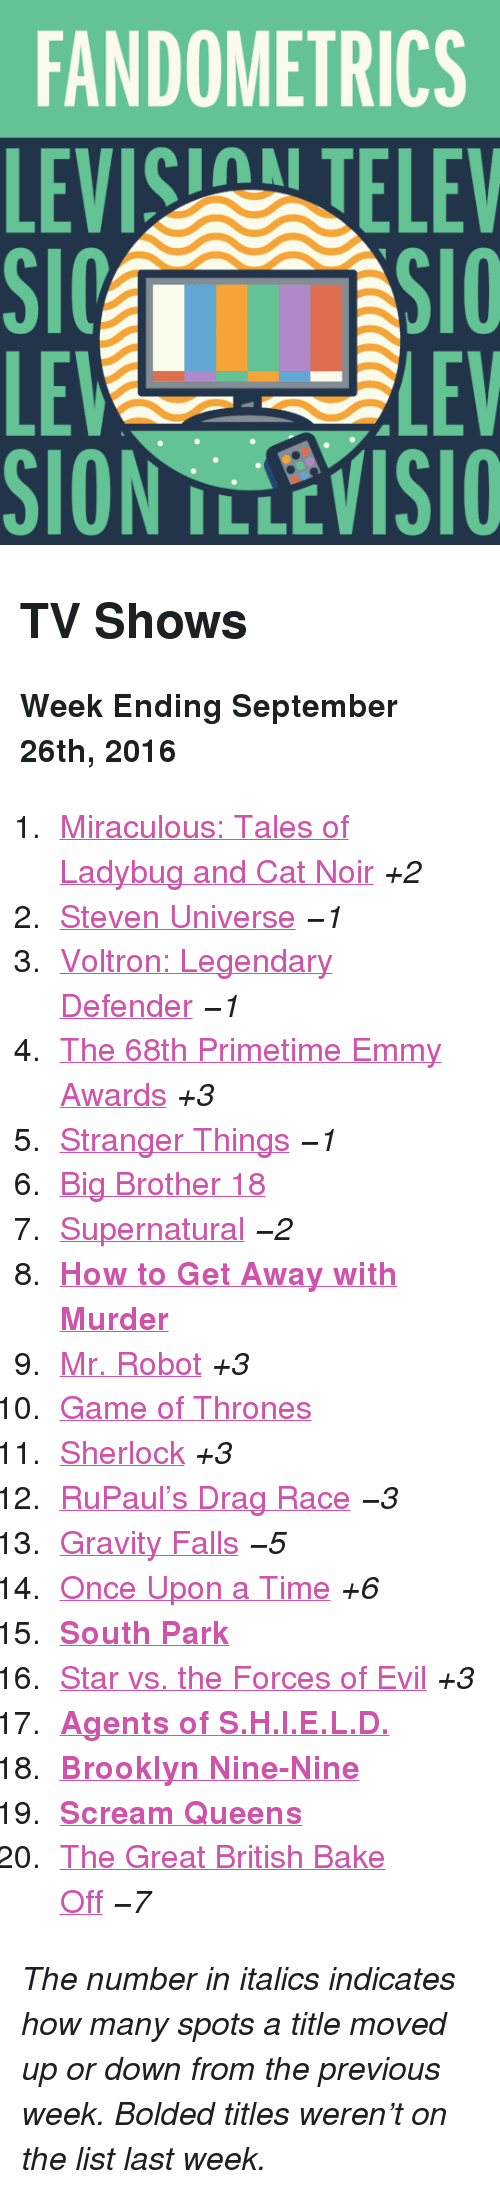 "emmy awards: FANDOMETRICS  LEVIS TELEV  LE  SION TLLEVISIO  LEV <h2>TV Shows</h2><p><b>Week Ending September 26th, 2016</b></p><ol><li><a href=""http://www.tumblr.com/search/miraculous%20ladybug"">Miraculous: Tales of Ladybug and Cat Noir</a> <i>+2</i></li>  <li><a href=""http://www.tumblr.com/search/steven%20universe"">Steven Universe</a> <i>−1</i></li>  <li><a href=""http://www.tumblr.com/search/voltron"">Voltron: Legendary Defender</a> <i>−1</i></li>  <li><a href=""http://www.tumblr.com/search/emmys"">The 68th Primetime Emmy Awards</a> <i>+3</i></li>  <li><a href=""http://www.tumblr.com/search/stranger%20things"">Stranger Things</a> <i>−1</i></li>  <li><a href=""http://www.tumblr.com/search/bb18"">Big Brother 18</a> </li>  <li><a href=""http://www.tumblr.com/search/supernatural"">Supernatural</a> <i>−2</i></li>  <li><a href=""http://www.tumblr.com/search/how%20to%20get%20away%20with%20murder""><b>How to Get Away with Murder</b></a></li>  <li><a href=""http://www.tumblr.com/search/mr%20robot"">Mr. Robot</a> <i>+3</i></li>  <li><a href=""http://www.tumblr.com/search/game%20of%20thrones"">Game of Thrones</a> </li>  <li><a href=""http://www.tumblr.com/search/sherlock"">Sherlock</a> <i>+3</i></li>  <li><a href=""http://www.tumblr.com/search/rupaul's%20drag%20race"">RuPaul&rsquo;s Drag Race</a> <i>−3</i></li>  <li><a href=""http://www.tumblr.com/search/gravity%20falls"">Gravity Falls</a> <i>−5</i></li>  <li><a href=""http://www.tumblr.com/search/ouat"">Once Upon a Time</a> <i>+6</i></li>  <li><a href=""http://www.tumblr.com/search/south%20park""><b>South Park</b></a></li>  <li><a href=""http://www.tumblr.com/search/star%20vs%20the%20forces%20of%20evil"">Star vs. the Forces of Evil</a> <i>+3</i></li>  <li><a href=""http://www.tumblr.com/search/agents%20of%20shield""><b>Agents of S.H.I.E.L.D.</b></a></li>  <li><a href=""http://www.tumblr.com/search/brooklyn%20nine%20nine""><b>Brooklyn Nine-Nine</b></a></li>  <li><a href=""http://www.tumblr.com/search/scream%20queens""><b>Scream Queens</b></a></li>  <li><a href=""http://www.tumblr.com/search/gbbo"">The Great British Bake Off</a> <i>−7</i></li></ol><p><i>The number in italics indicates how many spots a title moved up or down from the previous week. Bolded titles weren't on the list last week.</i></p>"